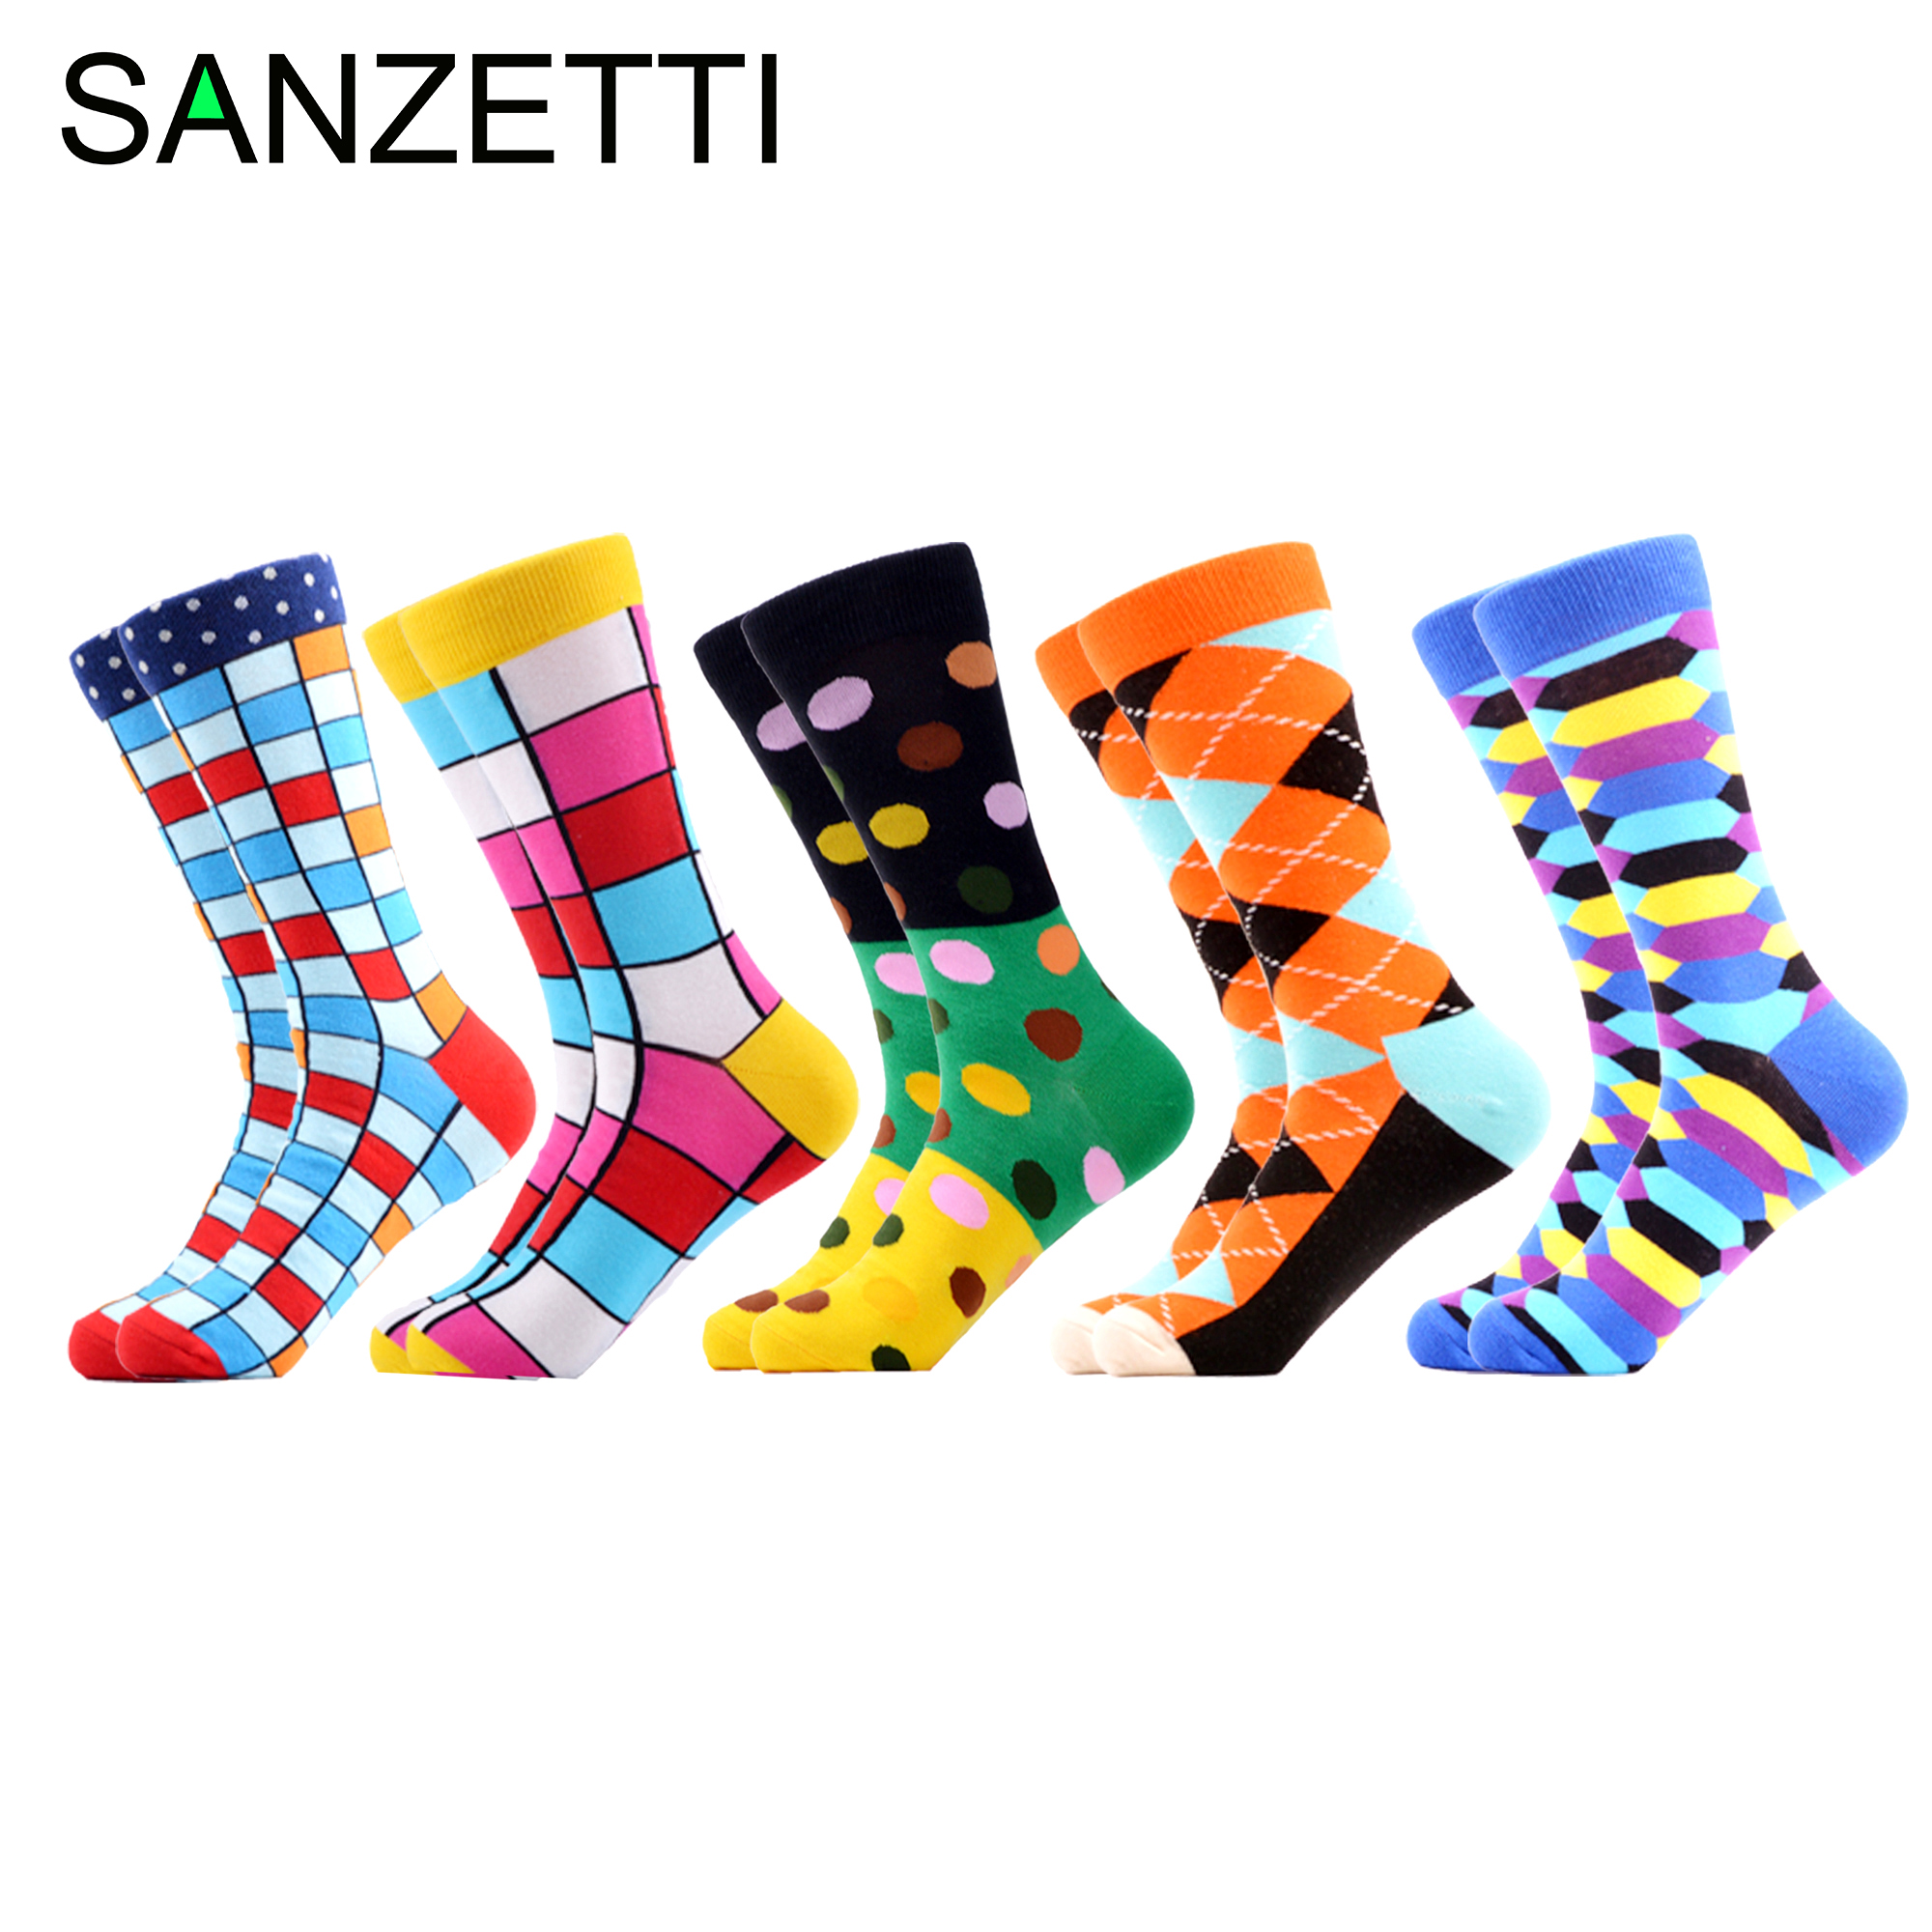 SANZETTI 5 Pairs/Lot Men Winter Casual Colorful Happy Crew Socks Hip Hop Novelty Creative High Quality Combed Cotton Dress Socks